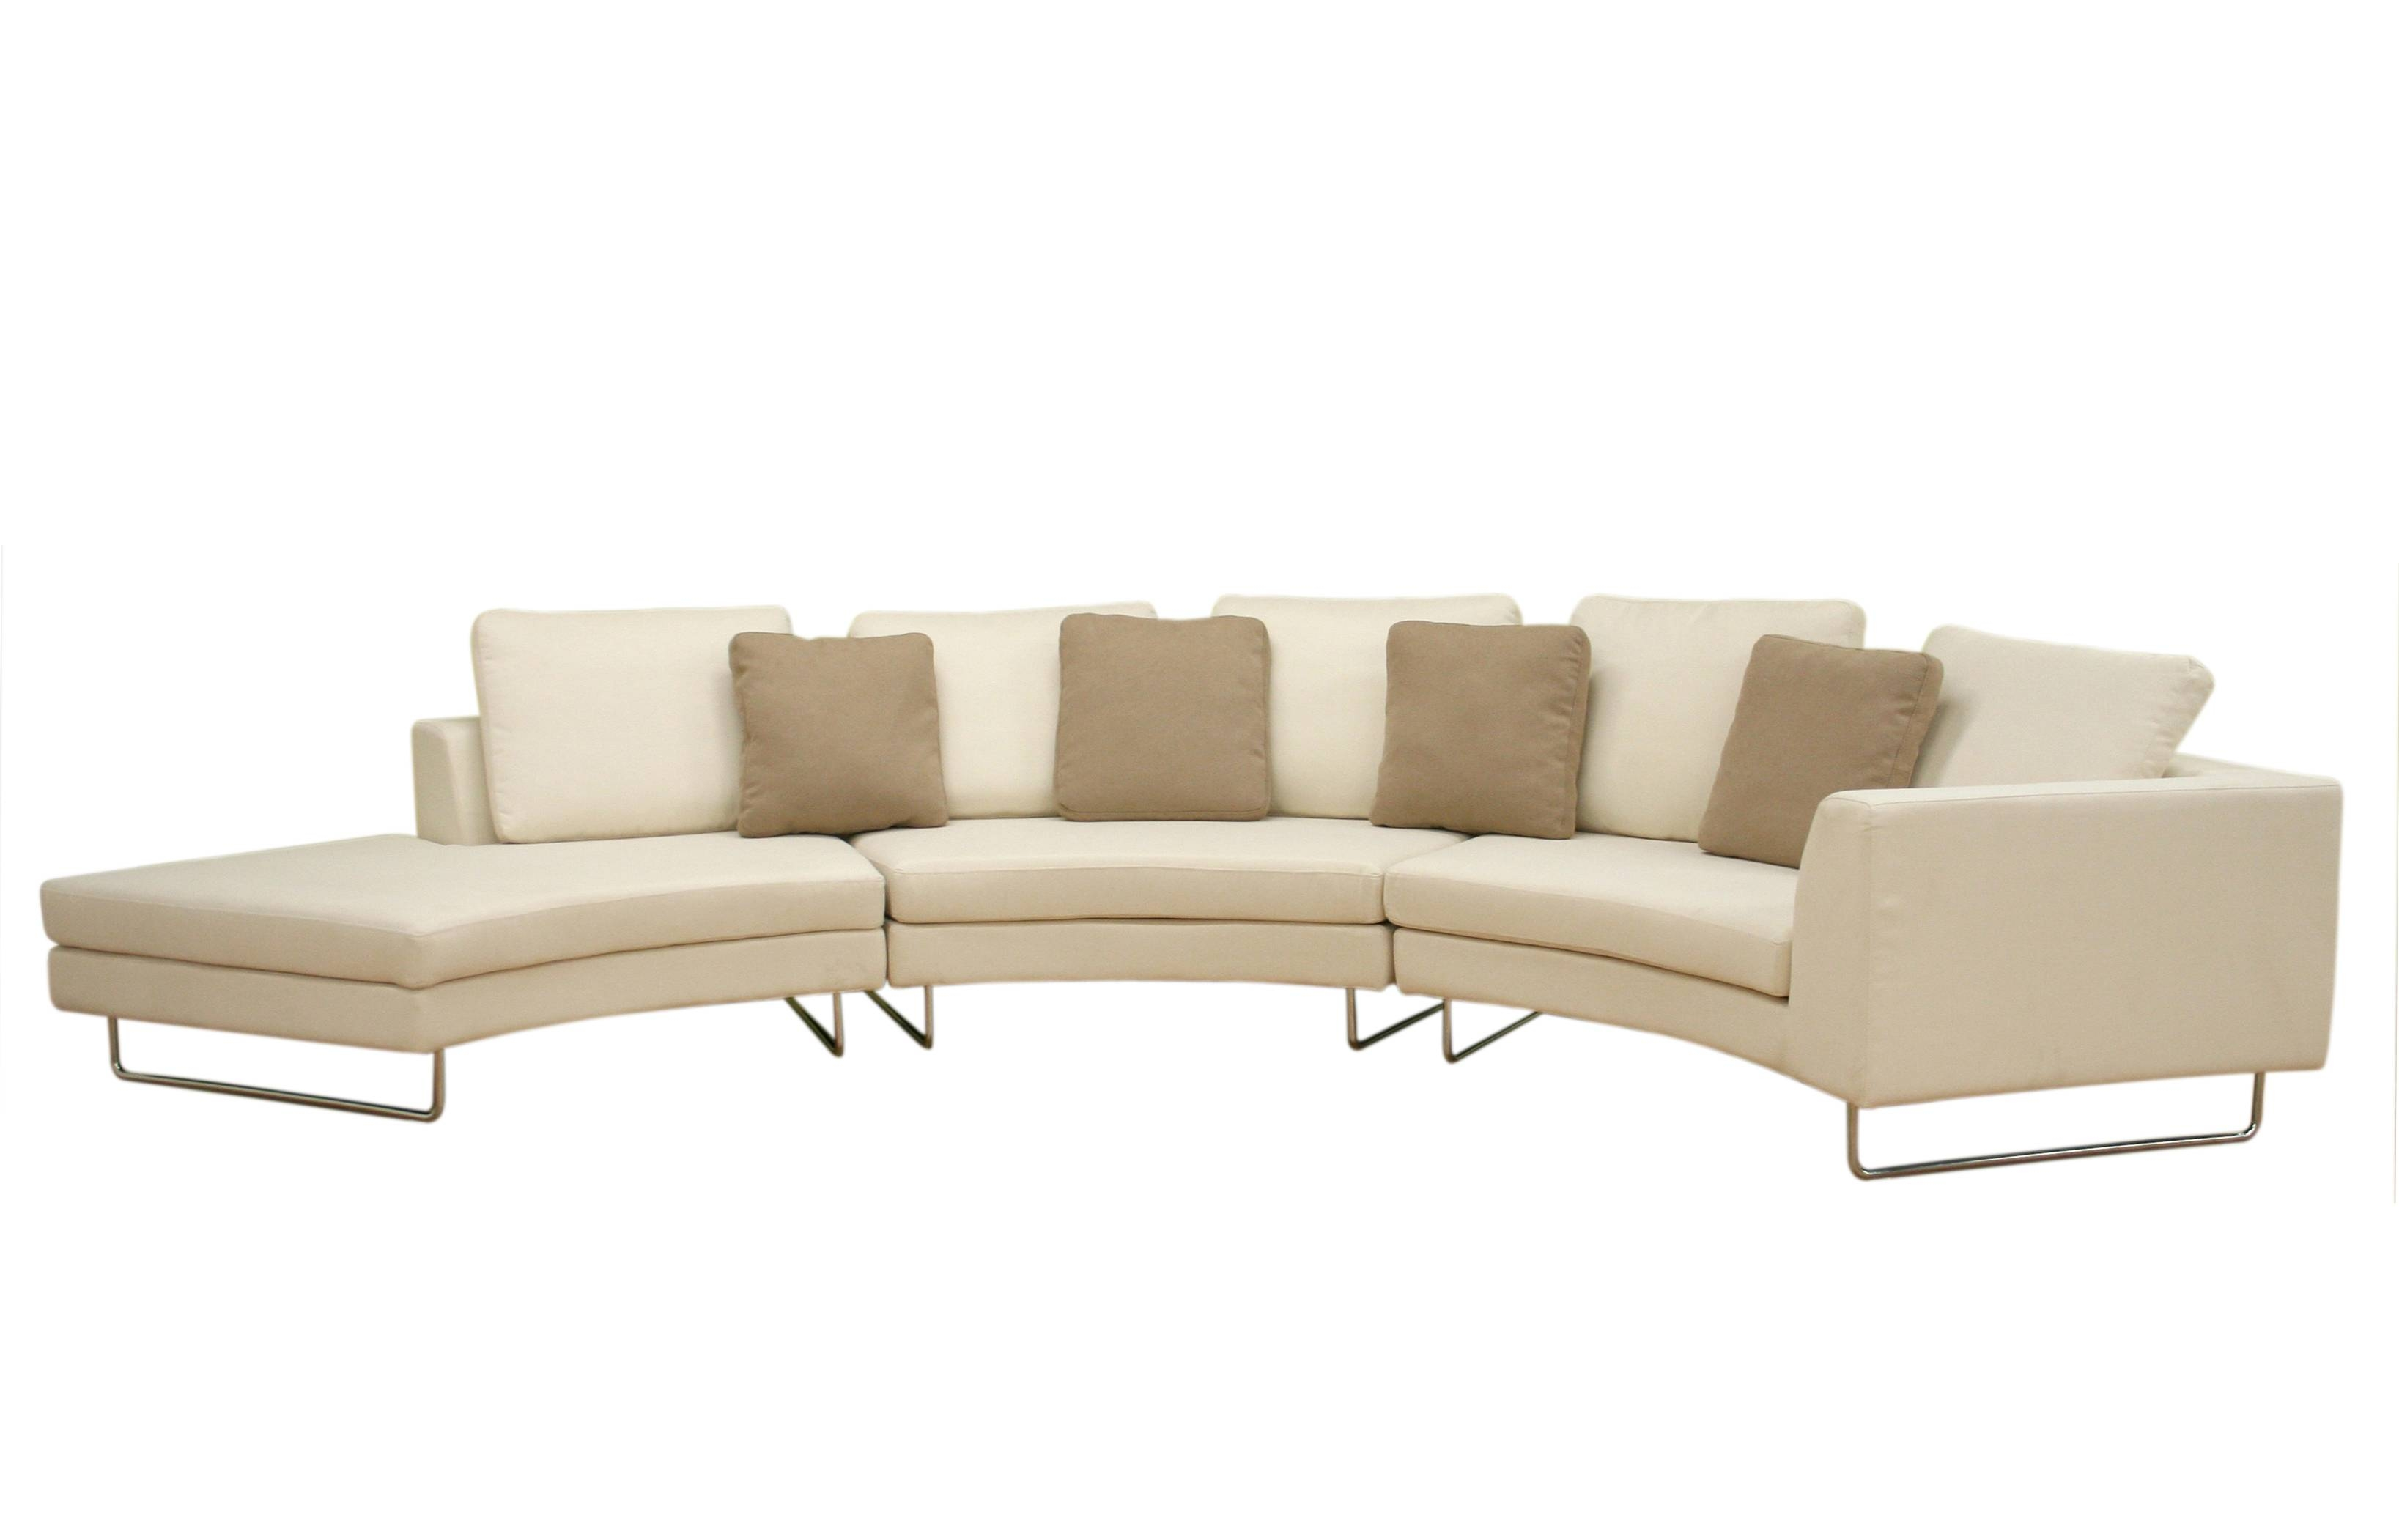 Living Room: Amazing Winsome Curved Sectional For Beautiful Living intended for Half Circle Sectional Sofas (Image 5 of 15)